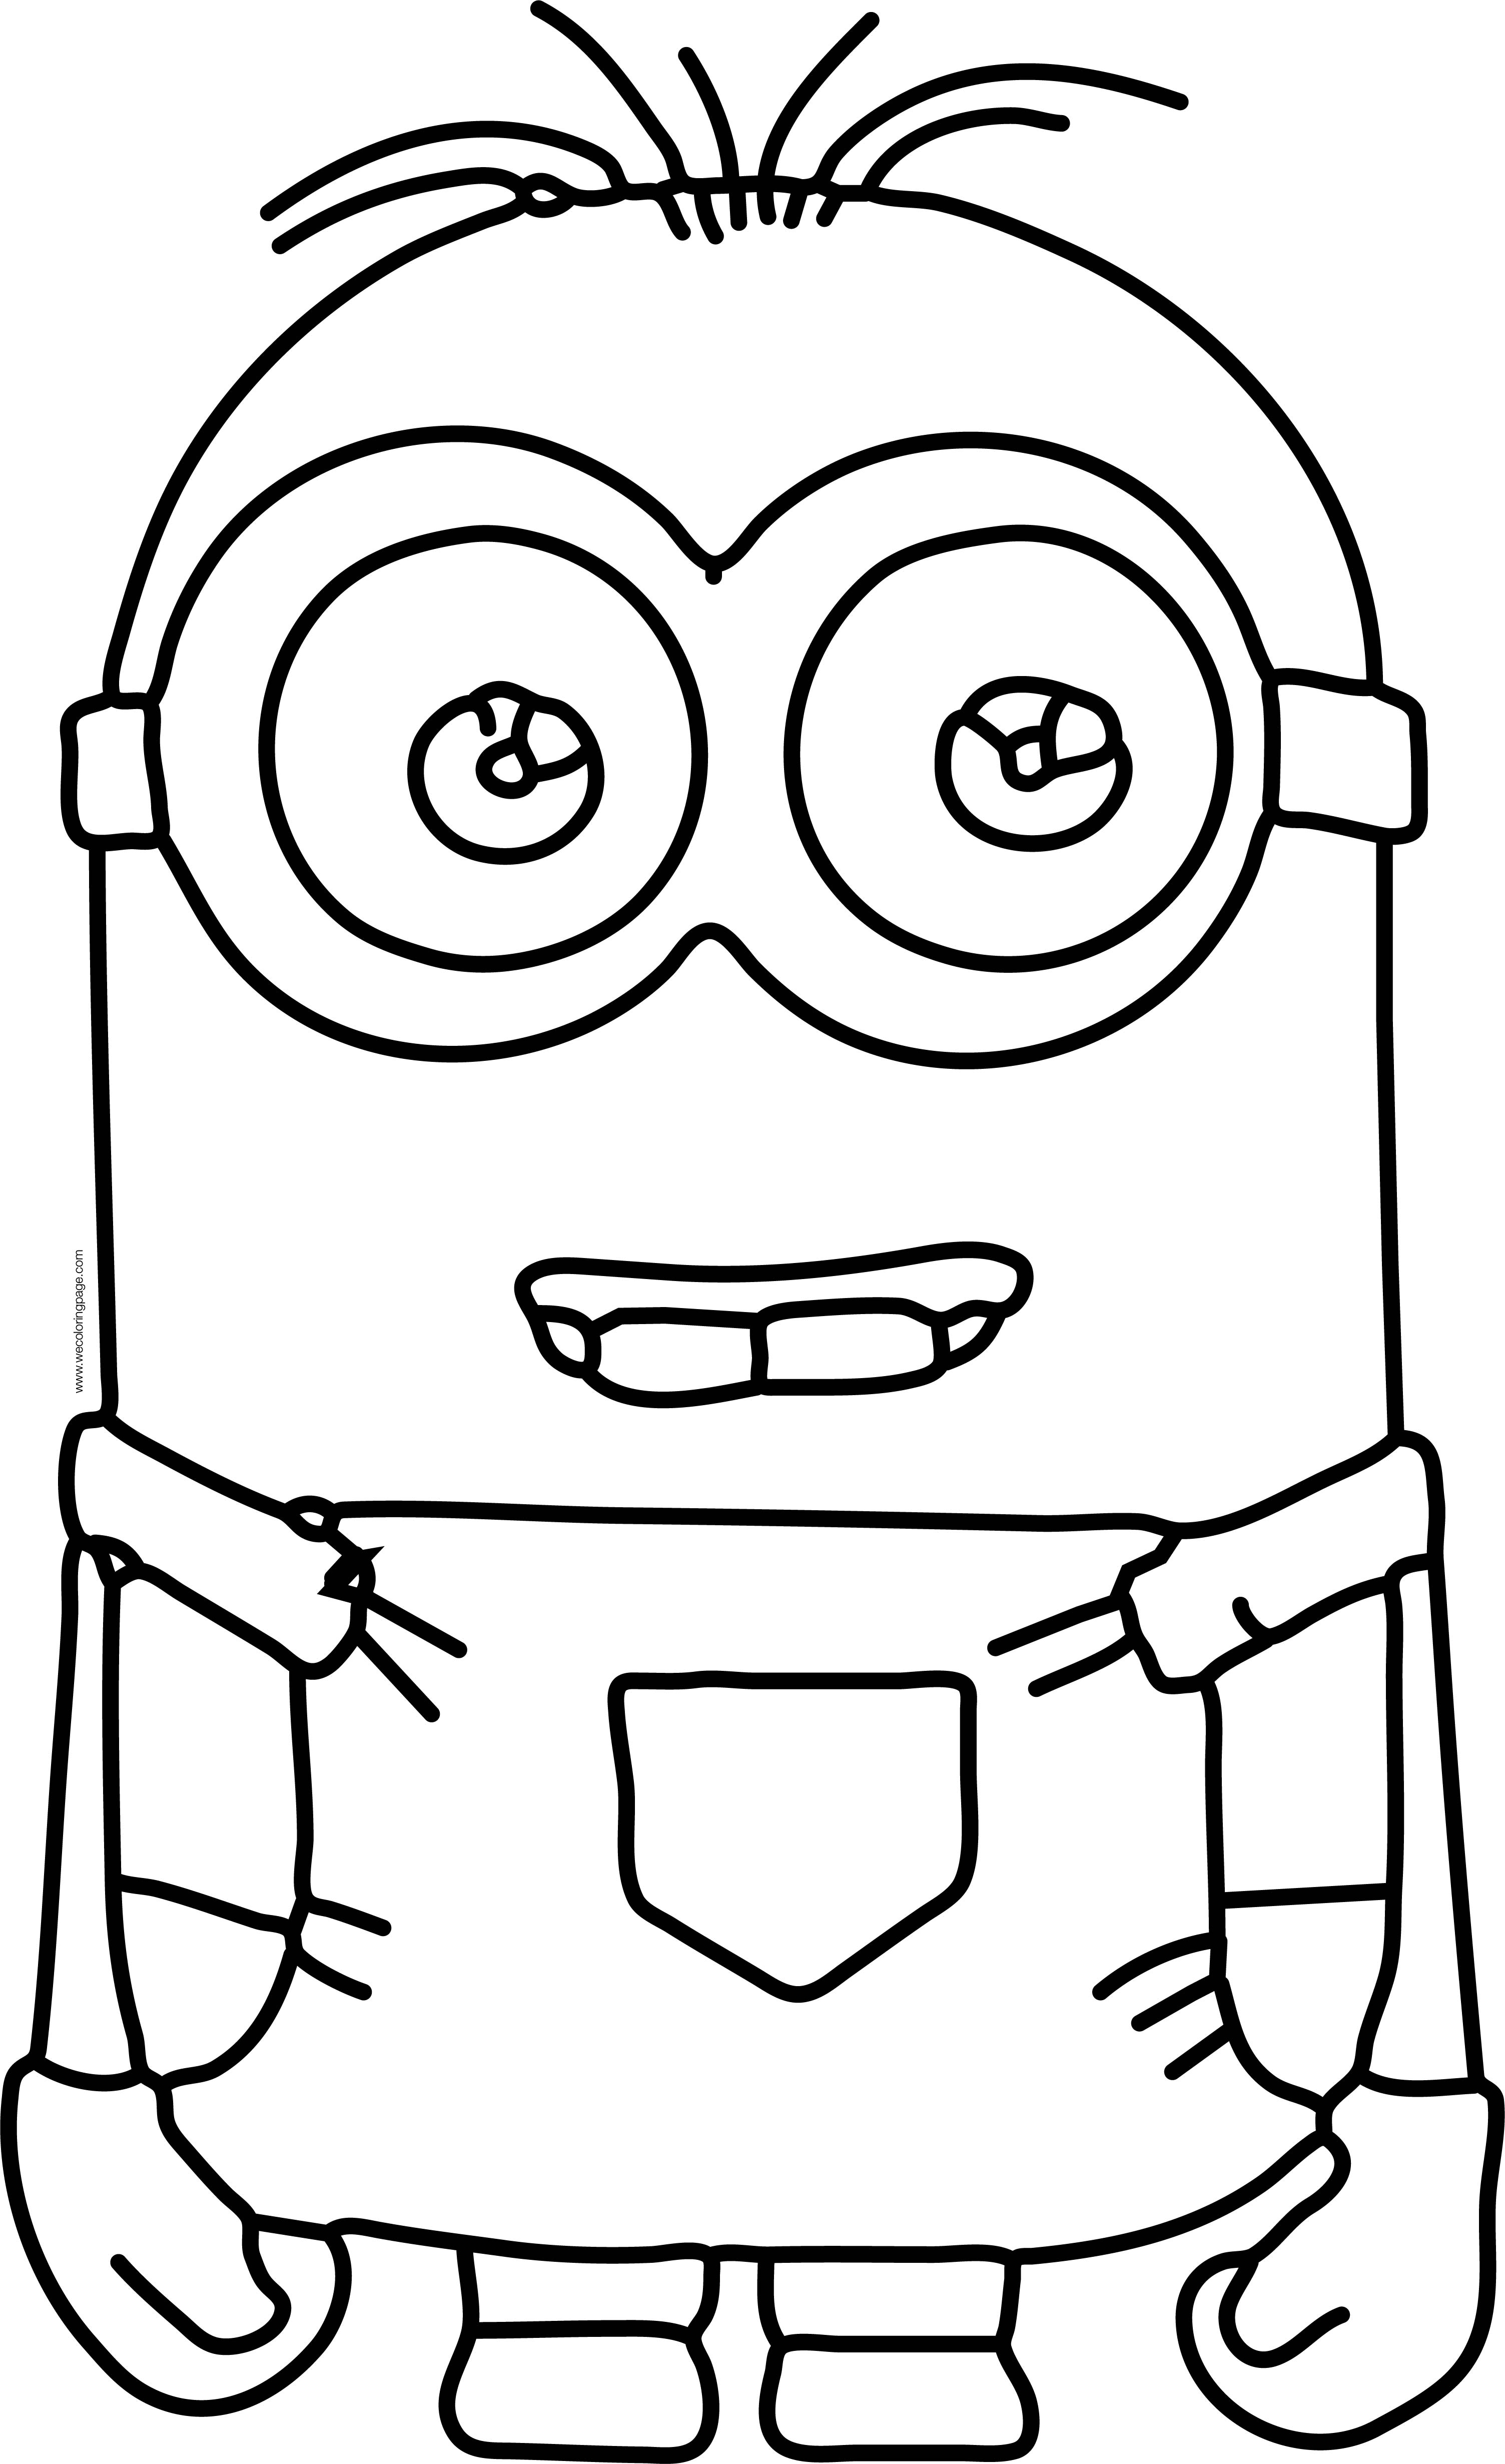 kevin minion free printable kevin minion coloring pages kevin minion 1 1